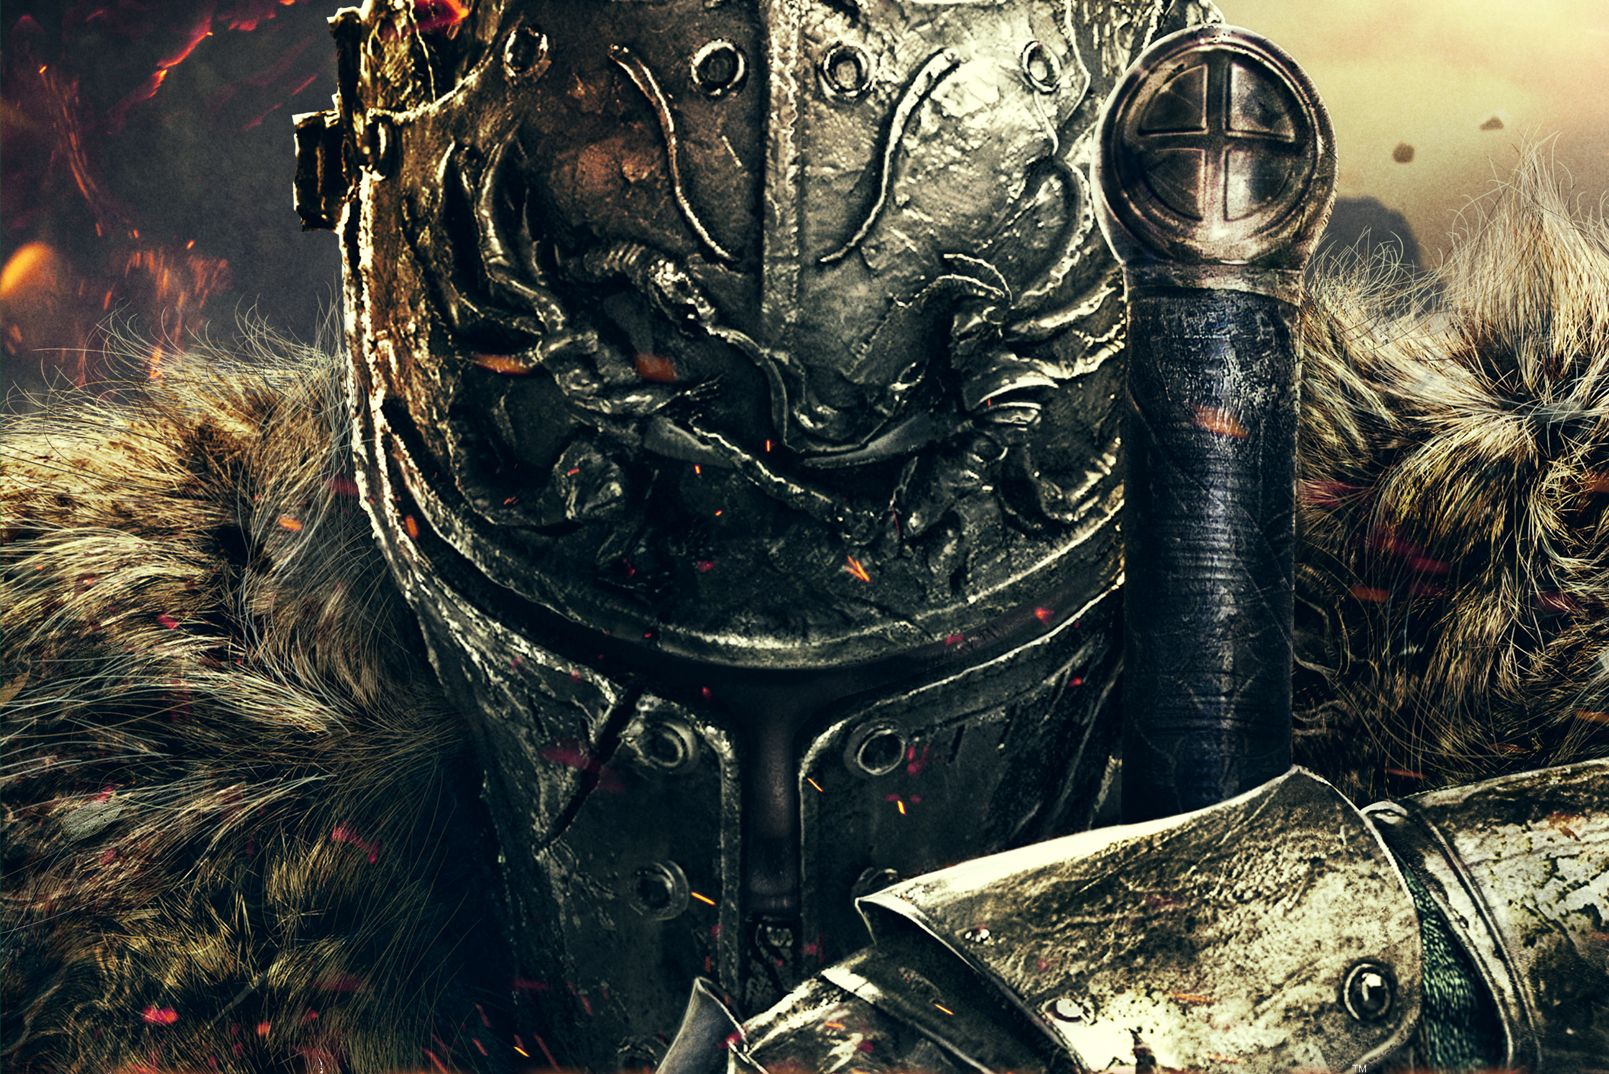 Dark Souls II review – prepare to obsess